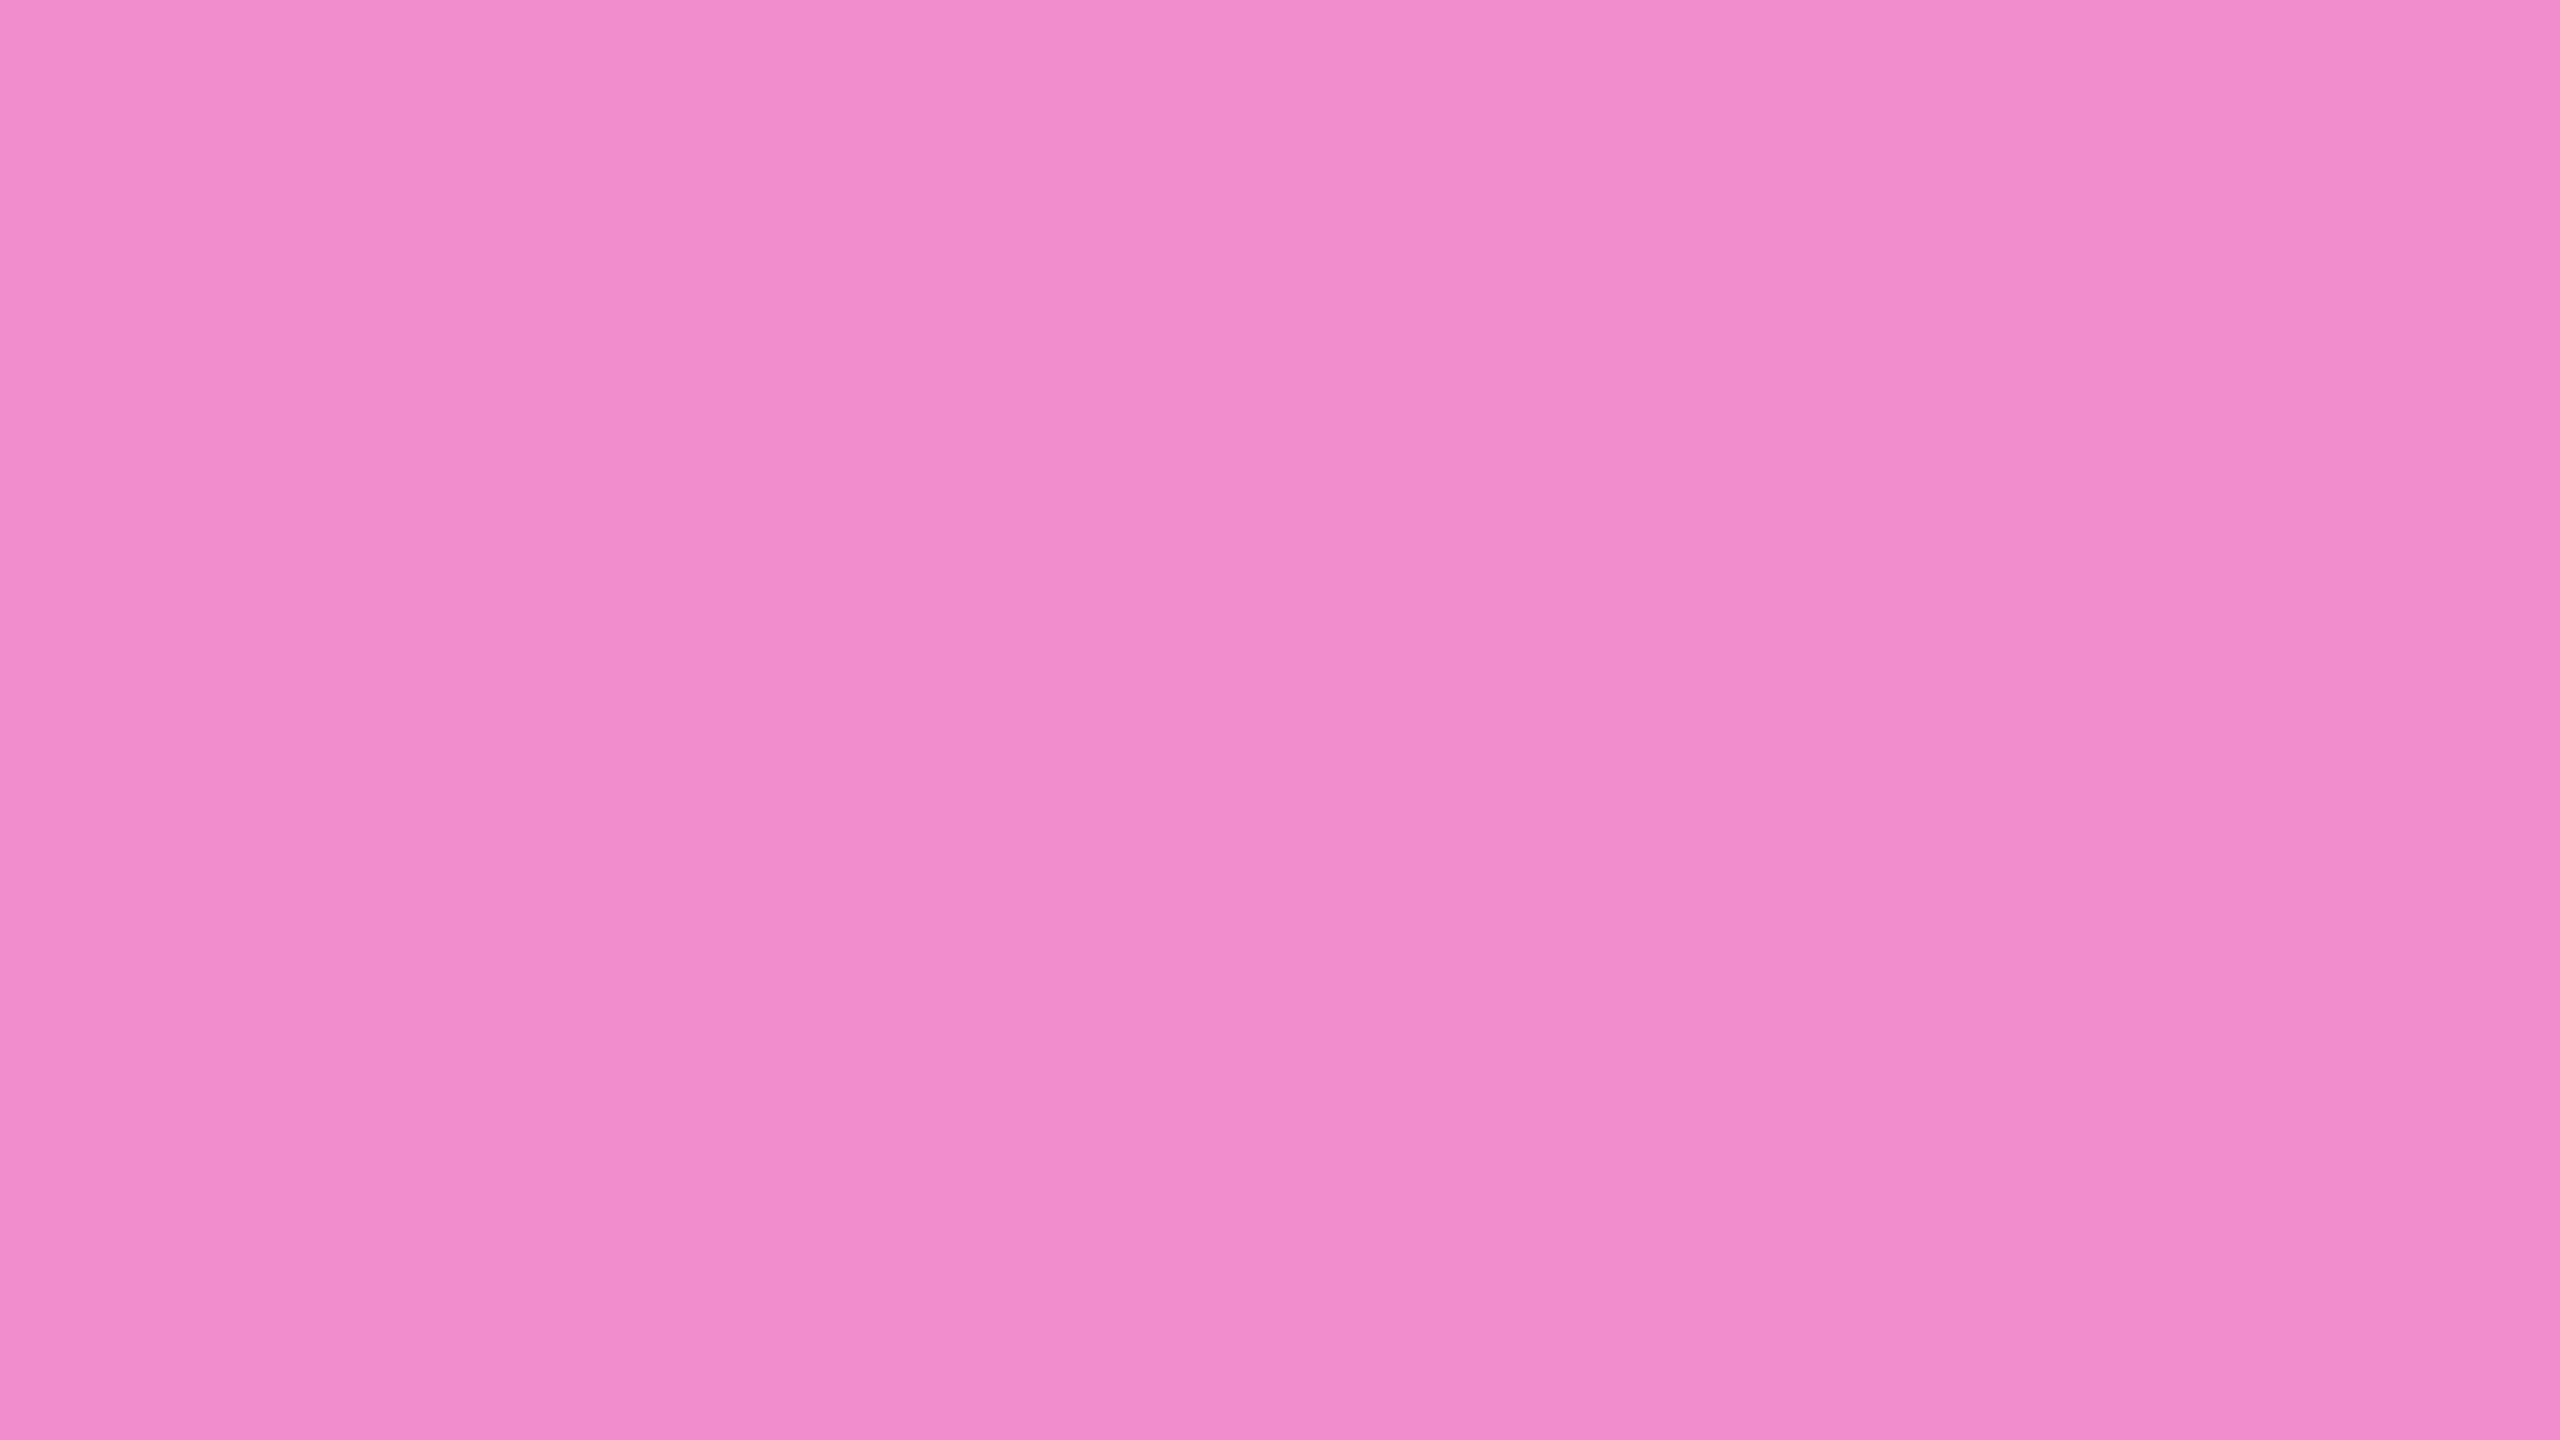 2560x1440 Orchid Pink Solid Color Background